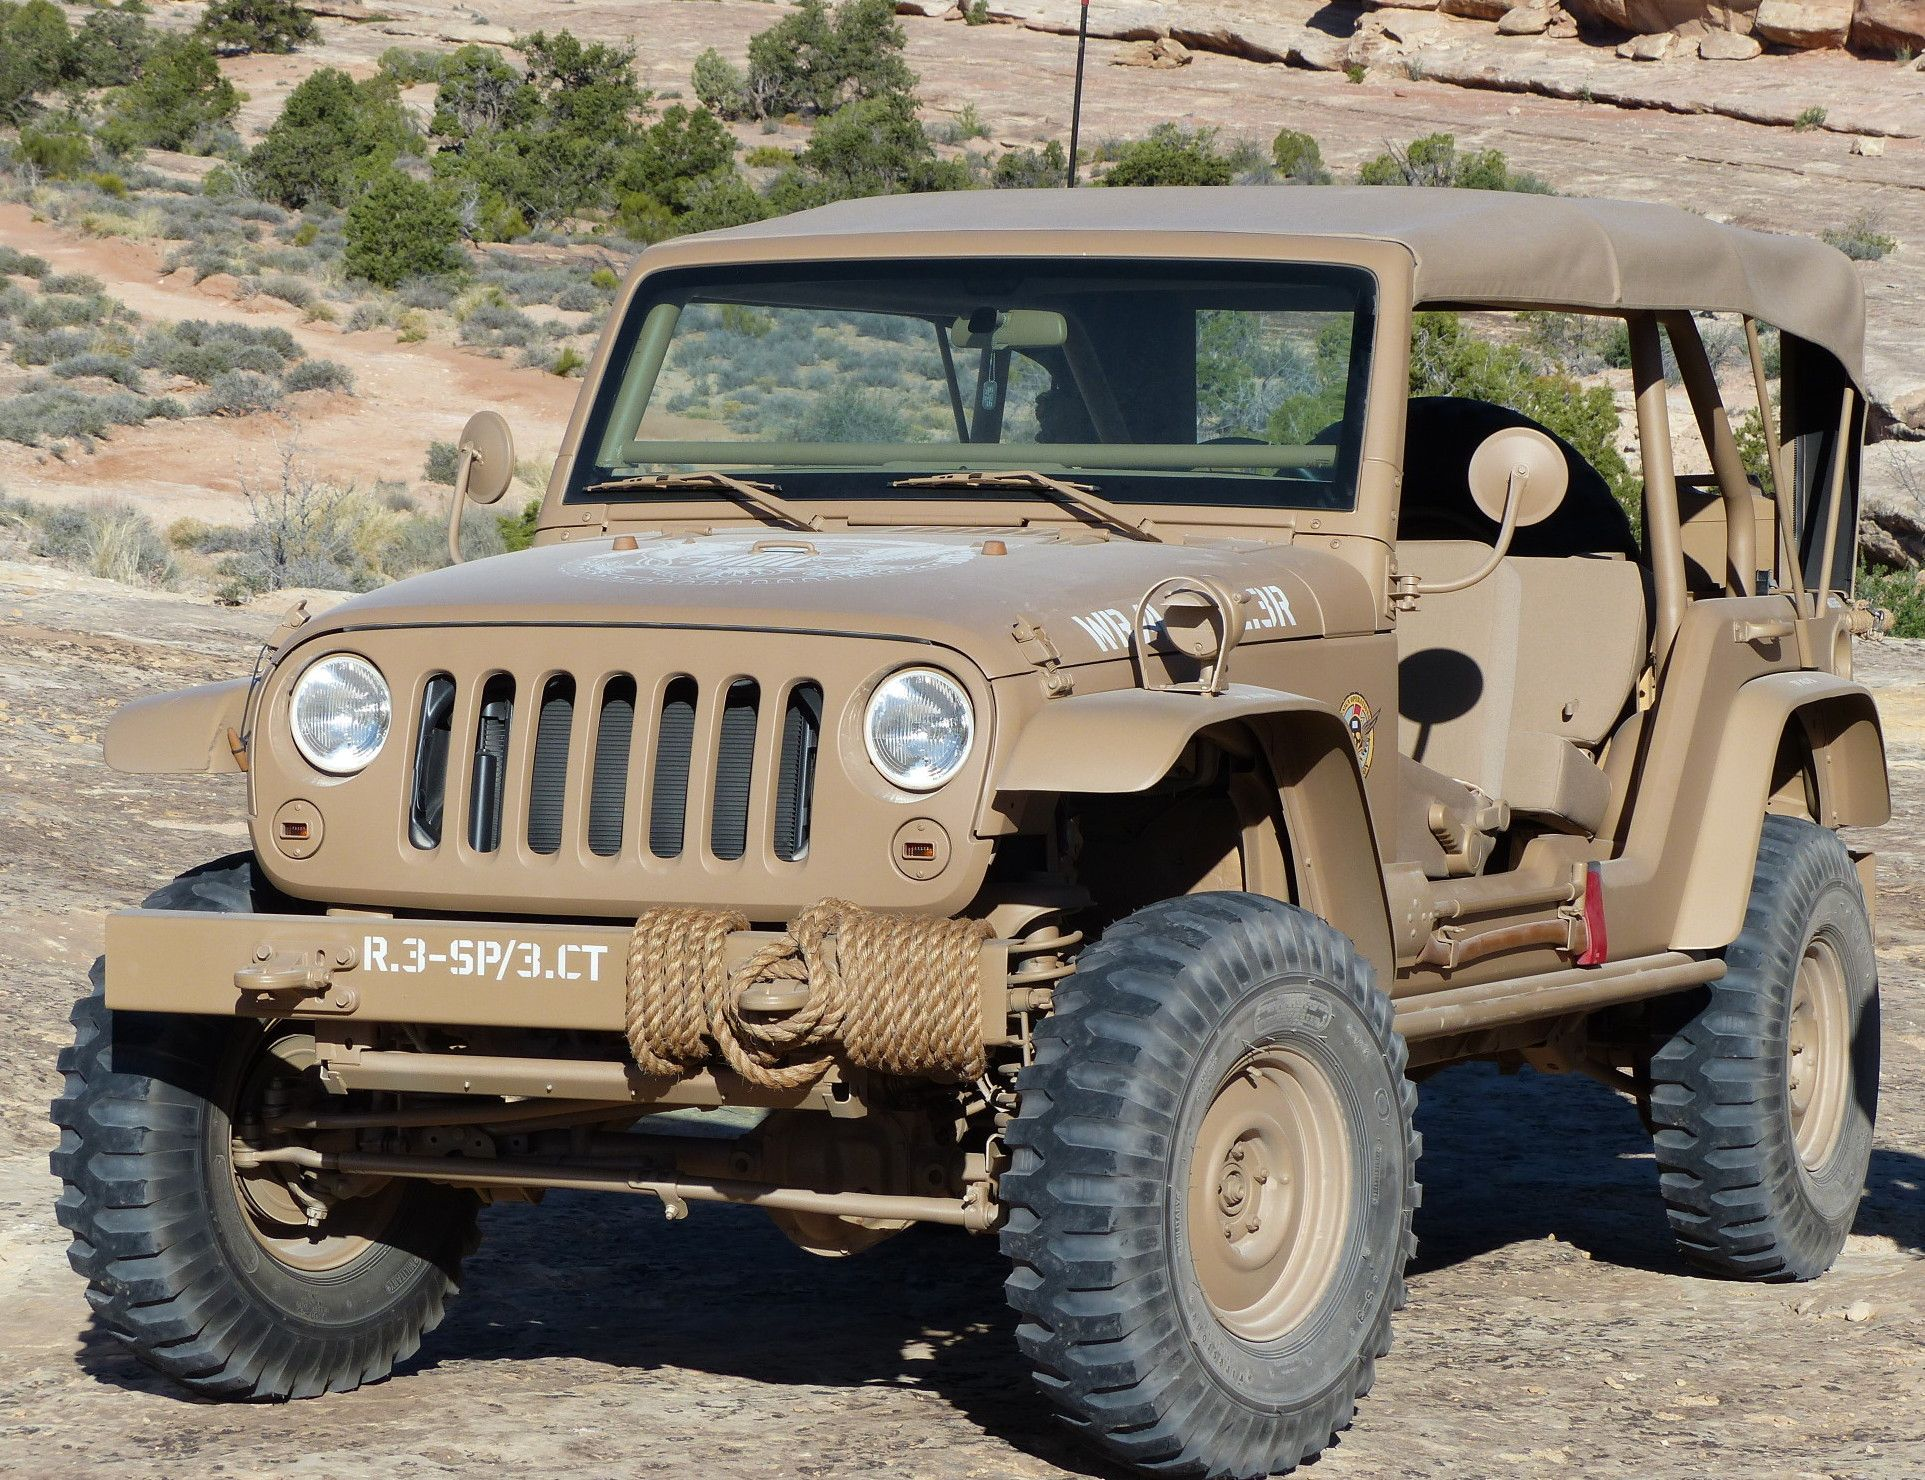 jeep wrangler africa concept: the one we really want them to build